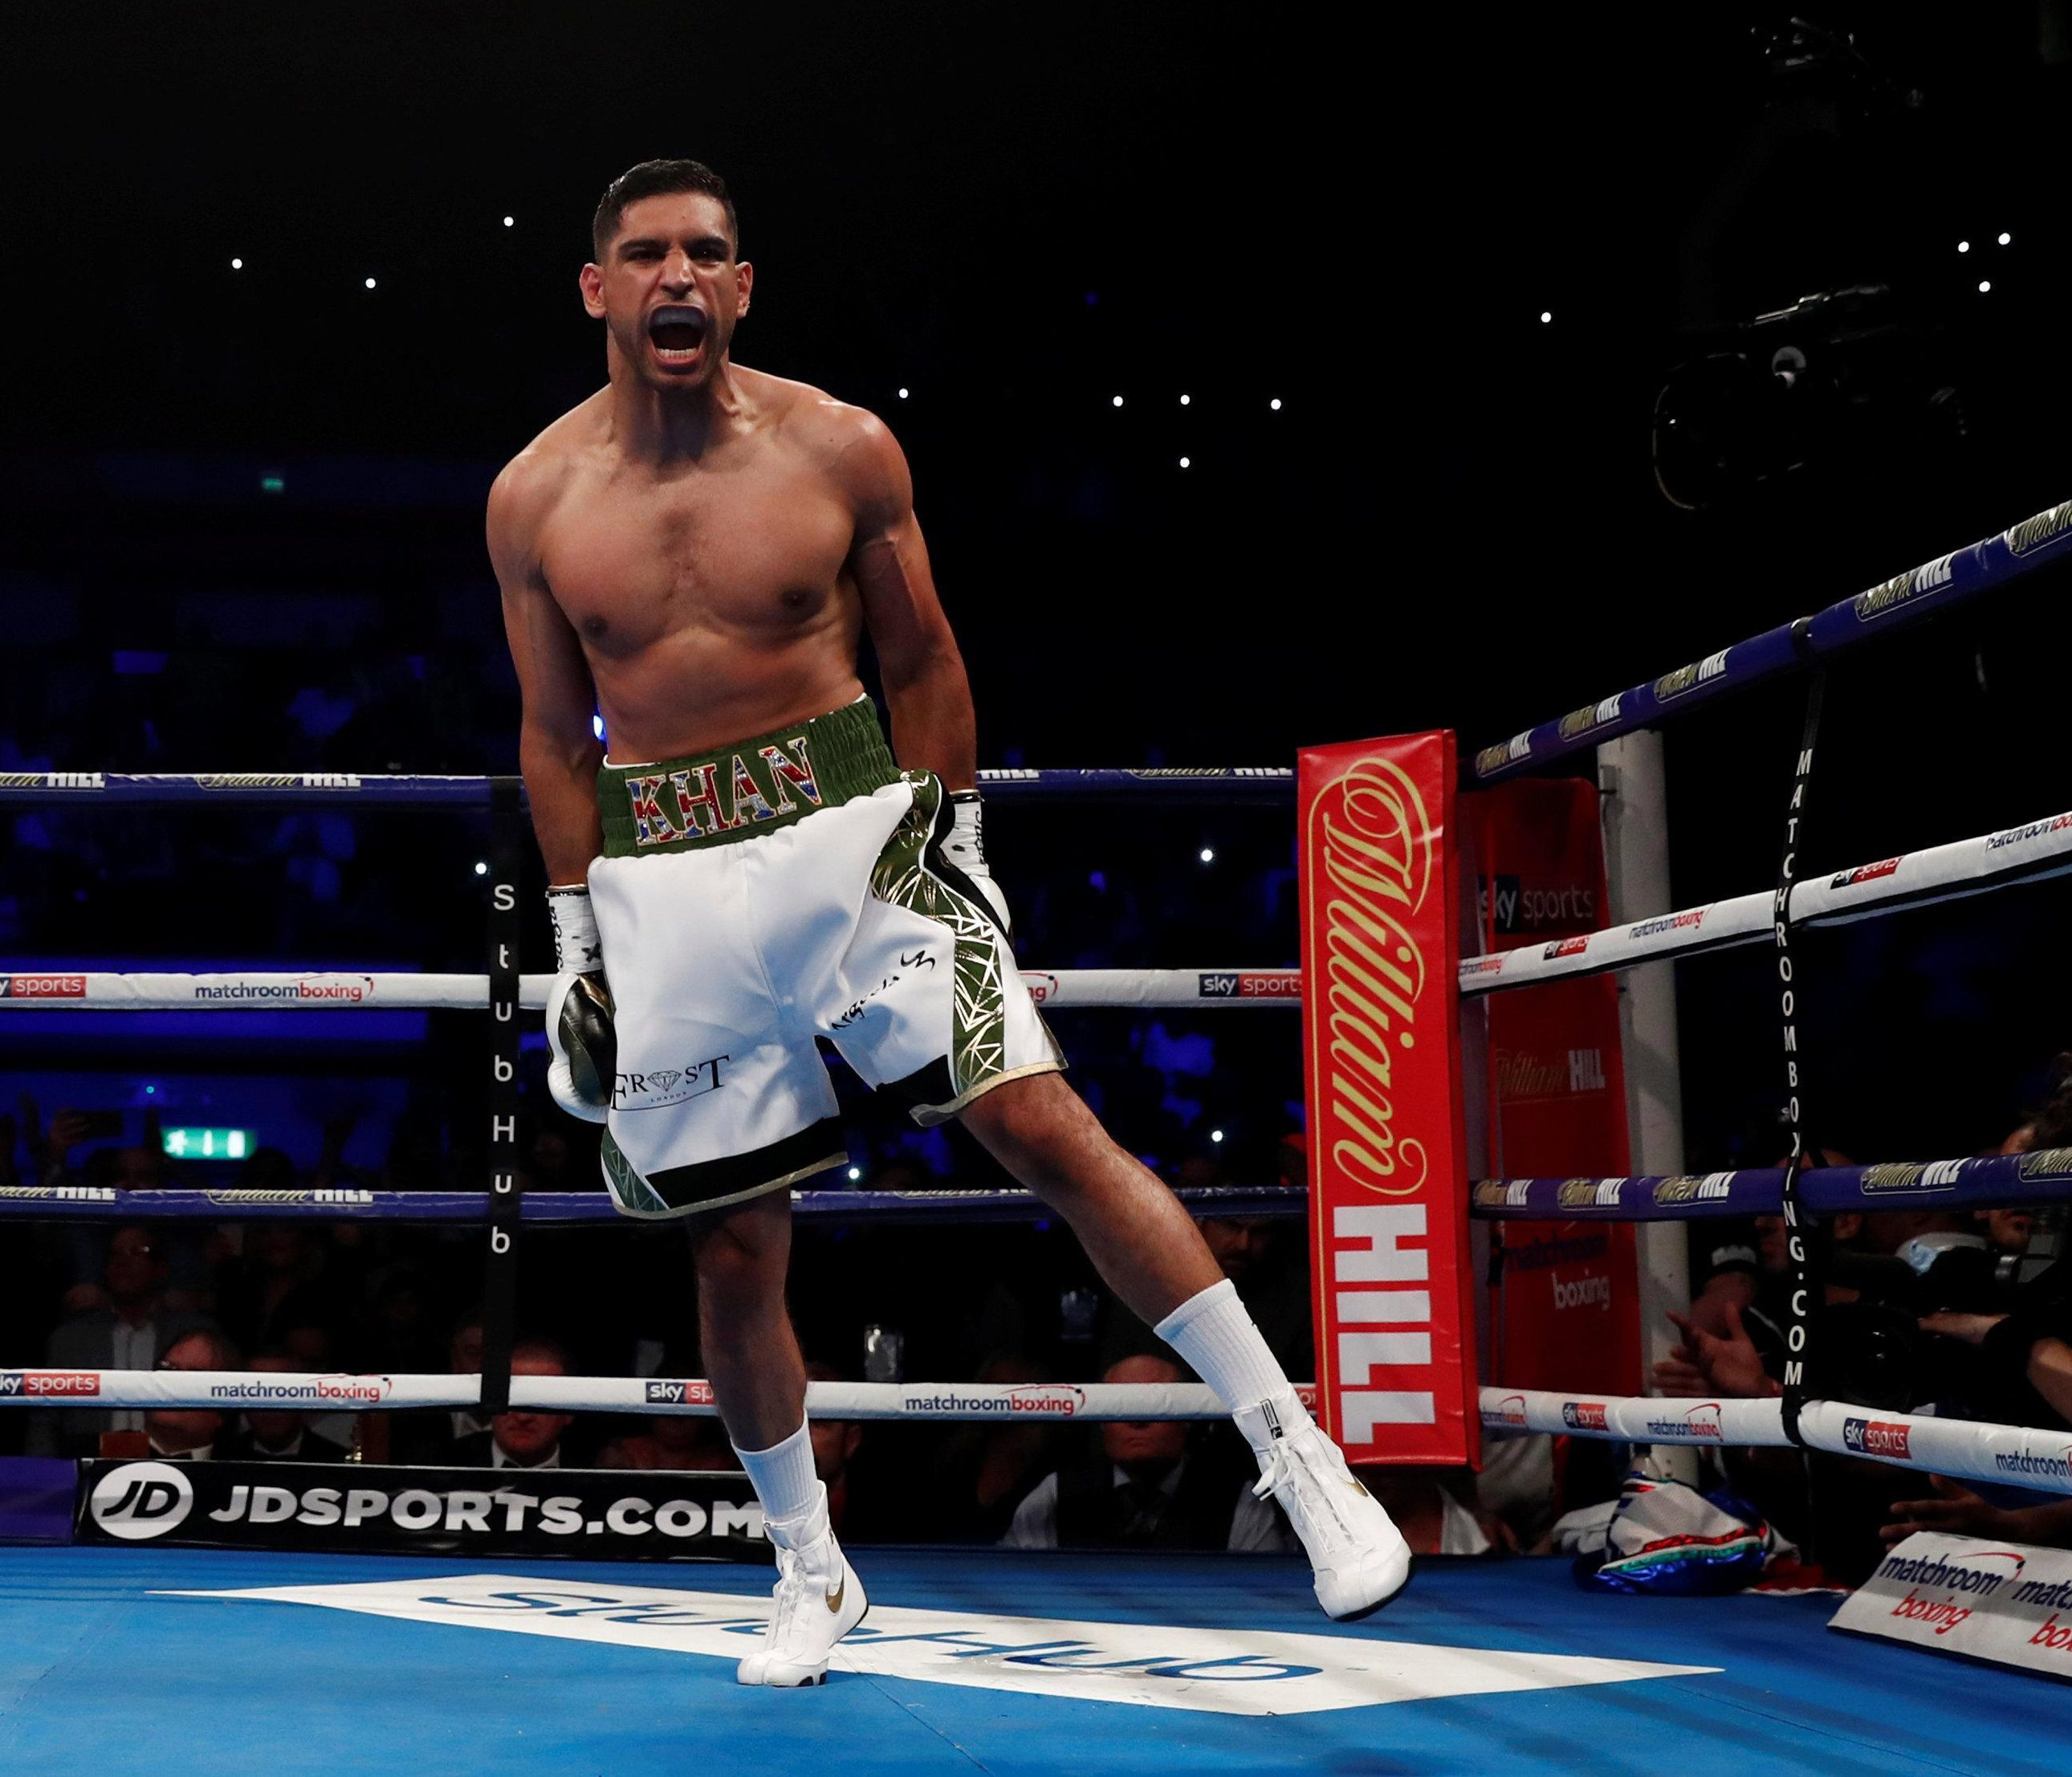 Amir Khan has been warned by Samuel Vargas he will be knocked out and suffer his fifth defeat